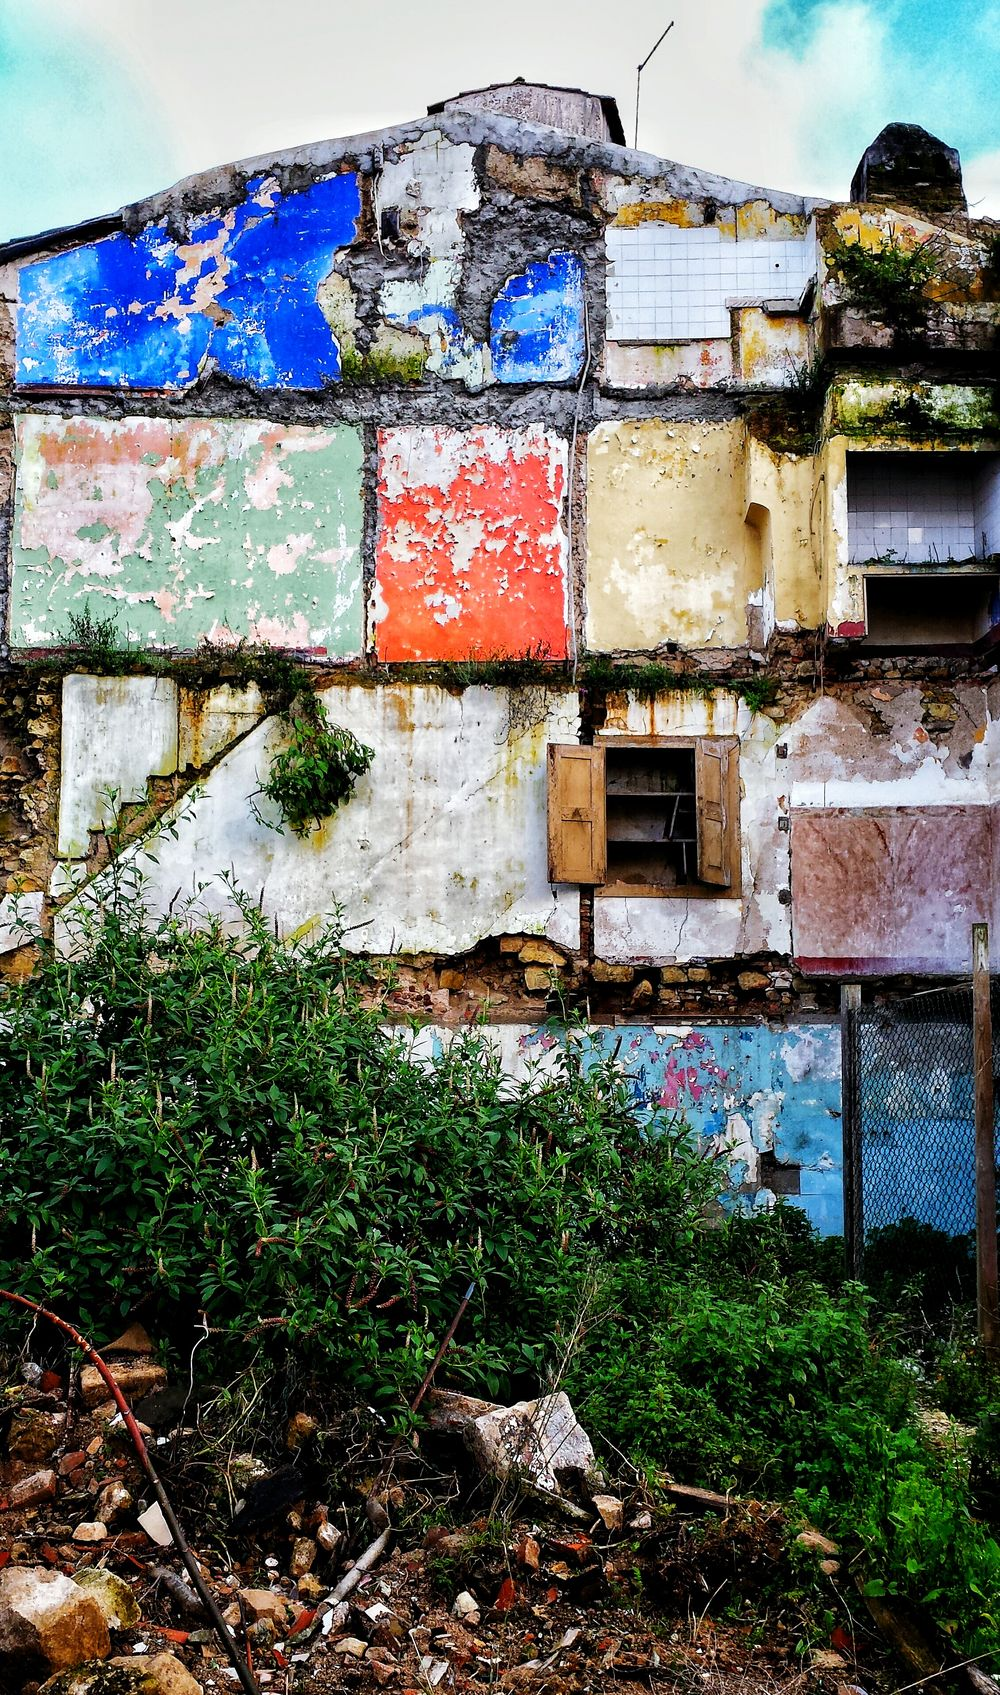 In ruins but still colorful! Ruins_photography Ruins Colors Colorful Houseruins Coimbra Coimbracity Coimbra Portugal